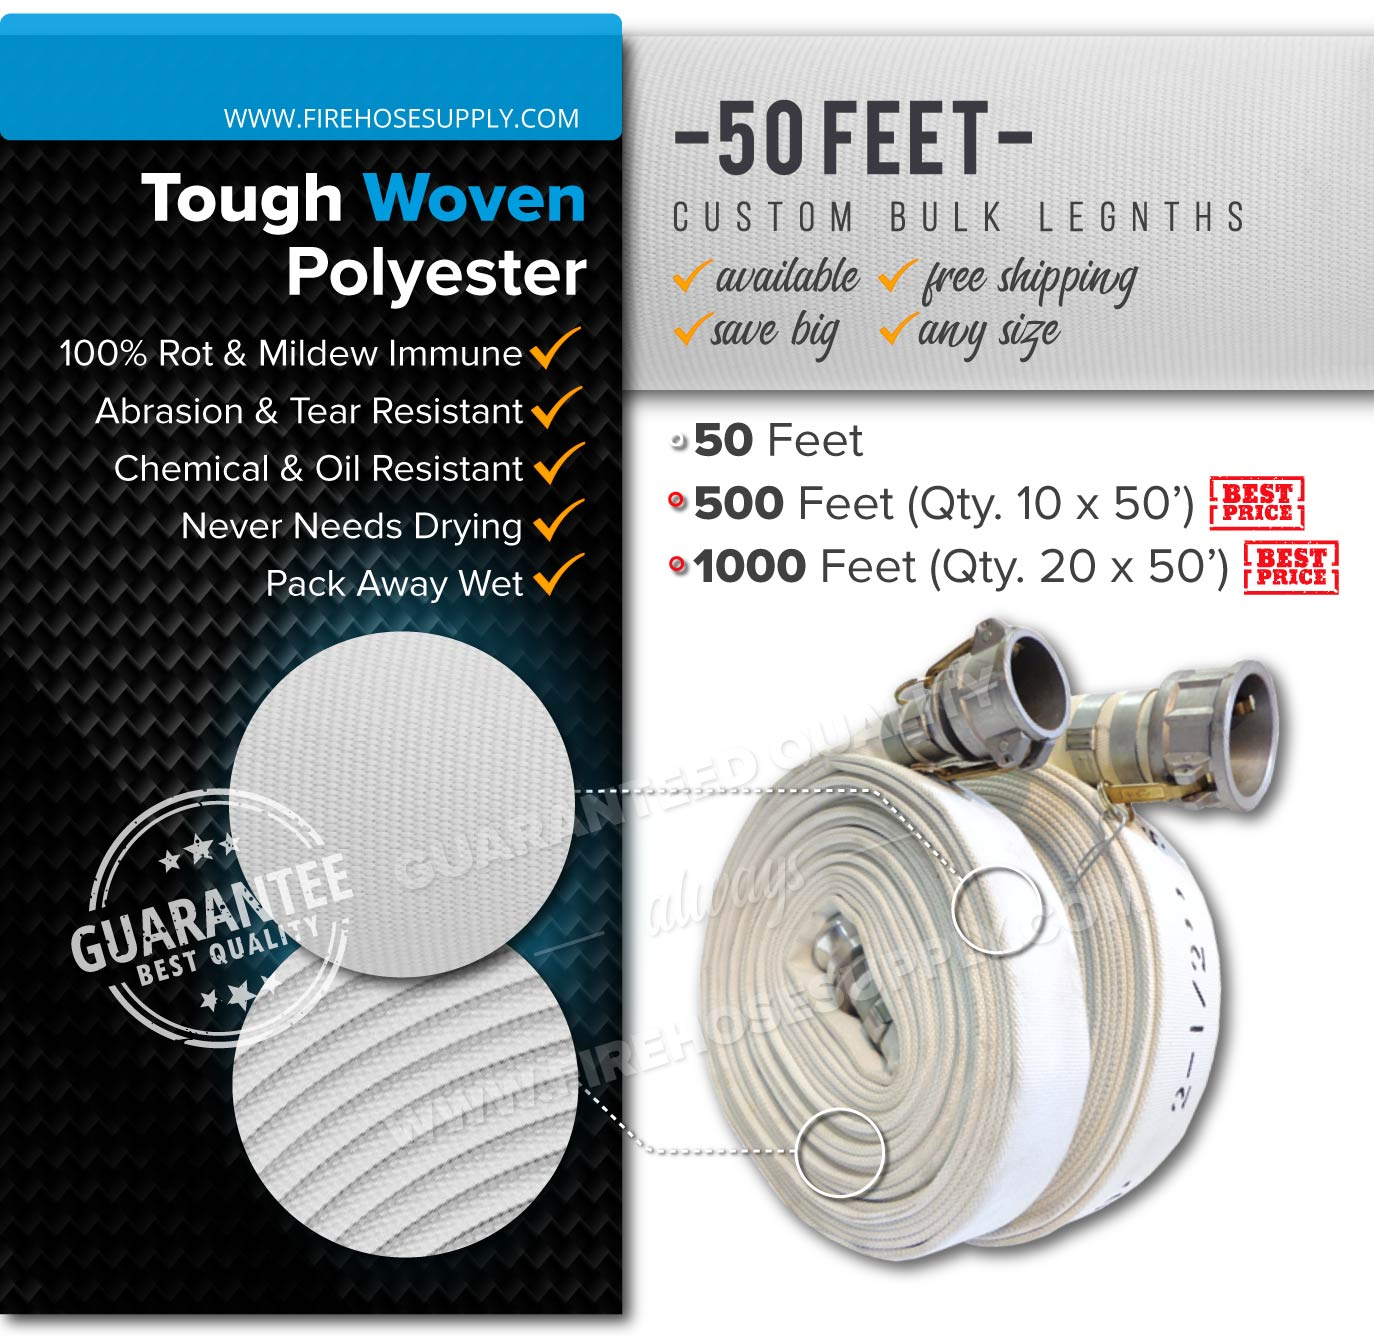 1 inch 50 feet camlock quick connect hose polyester bulk wholesale 1000 feet